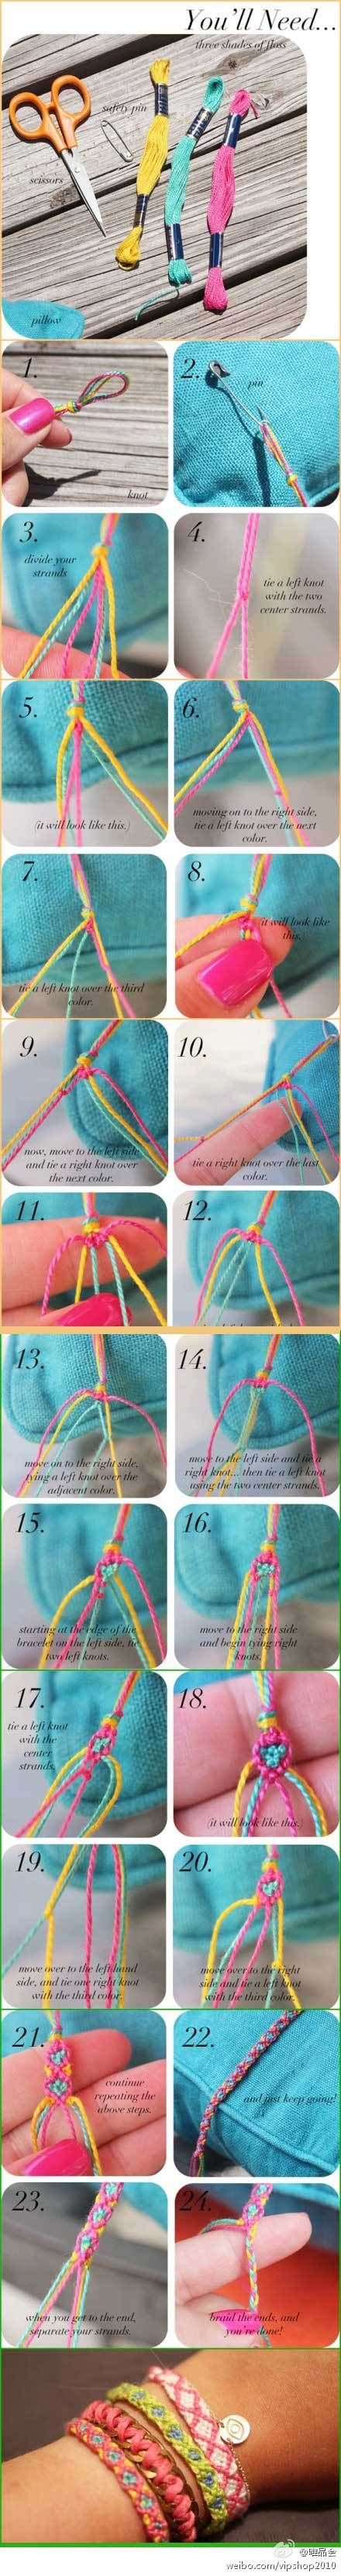 Macrame Inspiring Bracelets: Bracelets Tutorials, Friendship Bracelets Patterns, Macrame Bracelets, Diy Crafts, Friendship Braclets, Friendship Bracelets Tutorial, Cute Bracelets, Diy Bracelets, Floss Bracelets